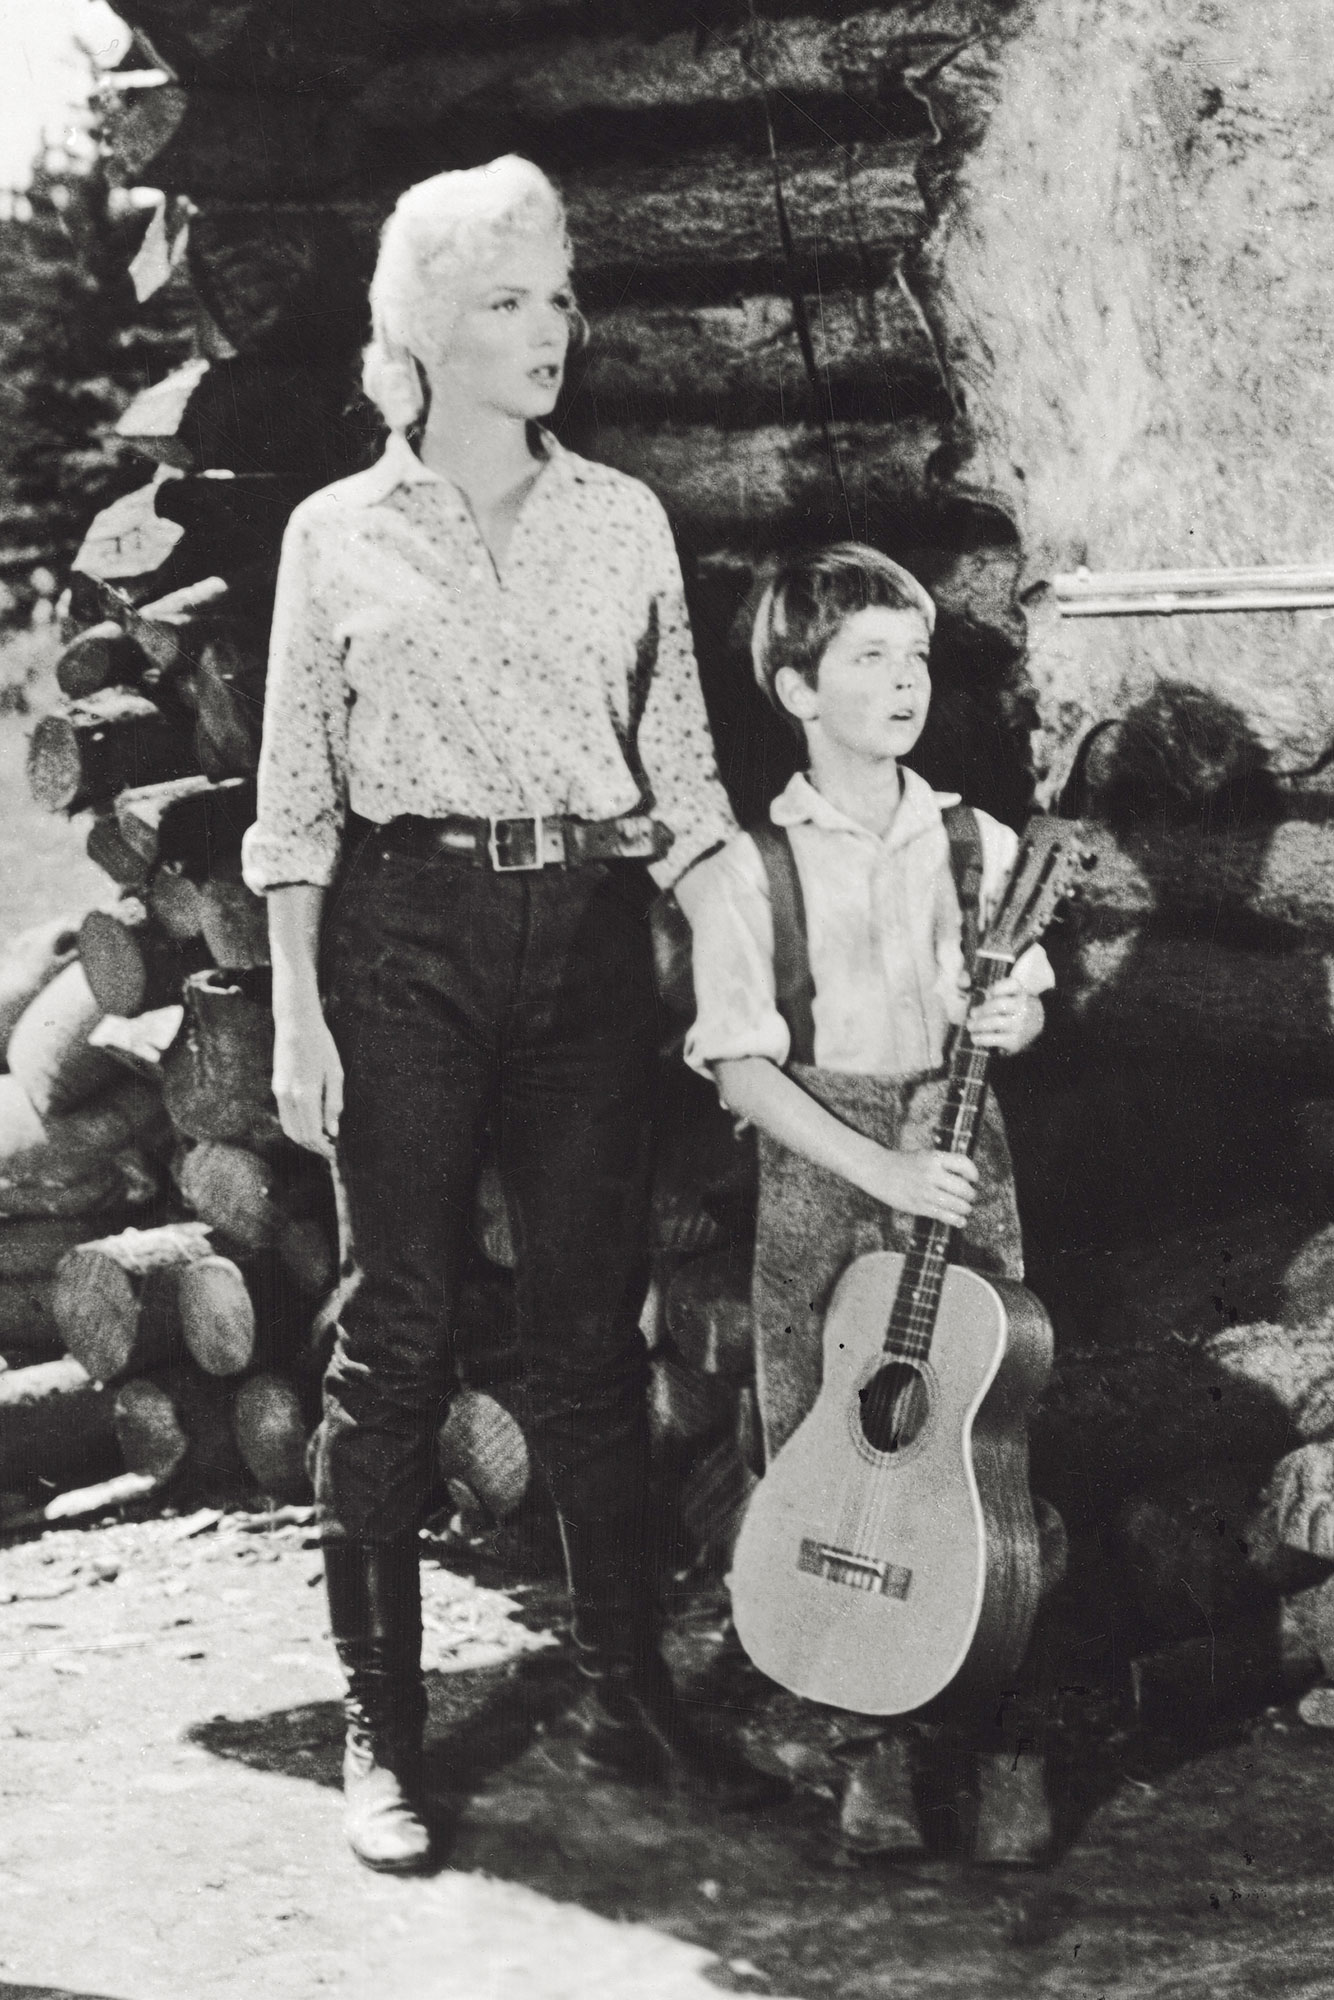 Marilyn Monroe, The Young Tommy Rettig And Rory Calhoun In A Scene Of A Film